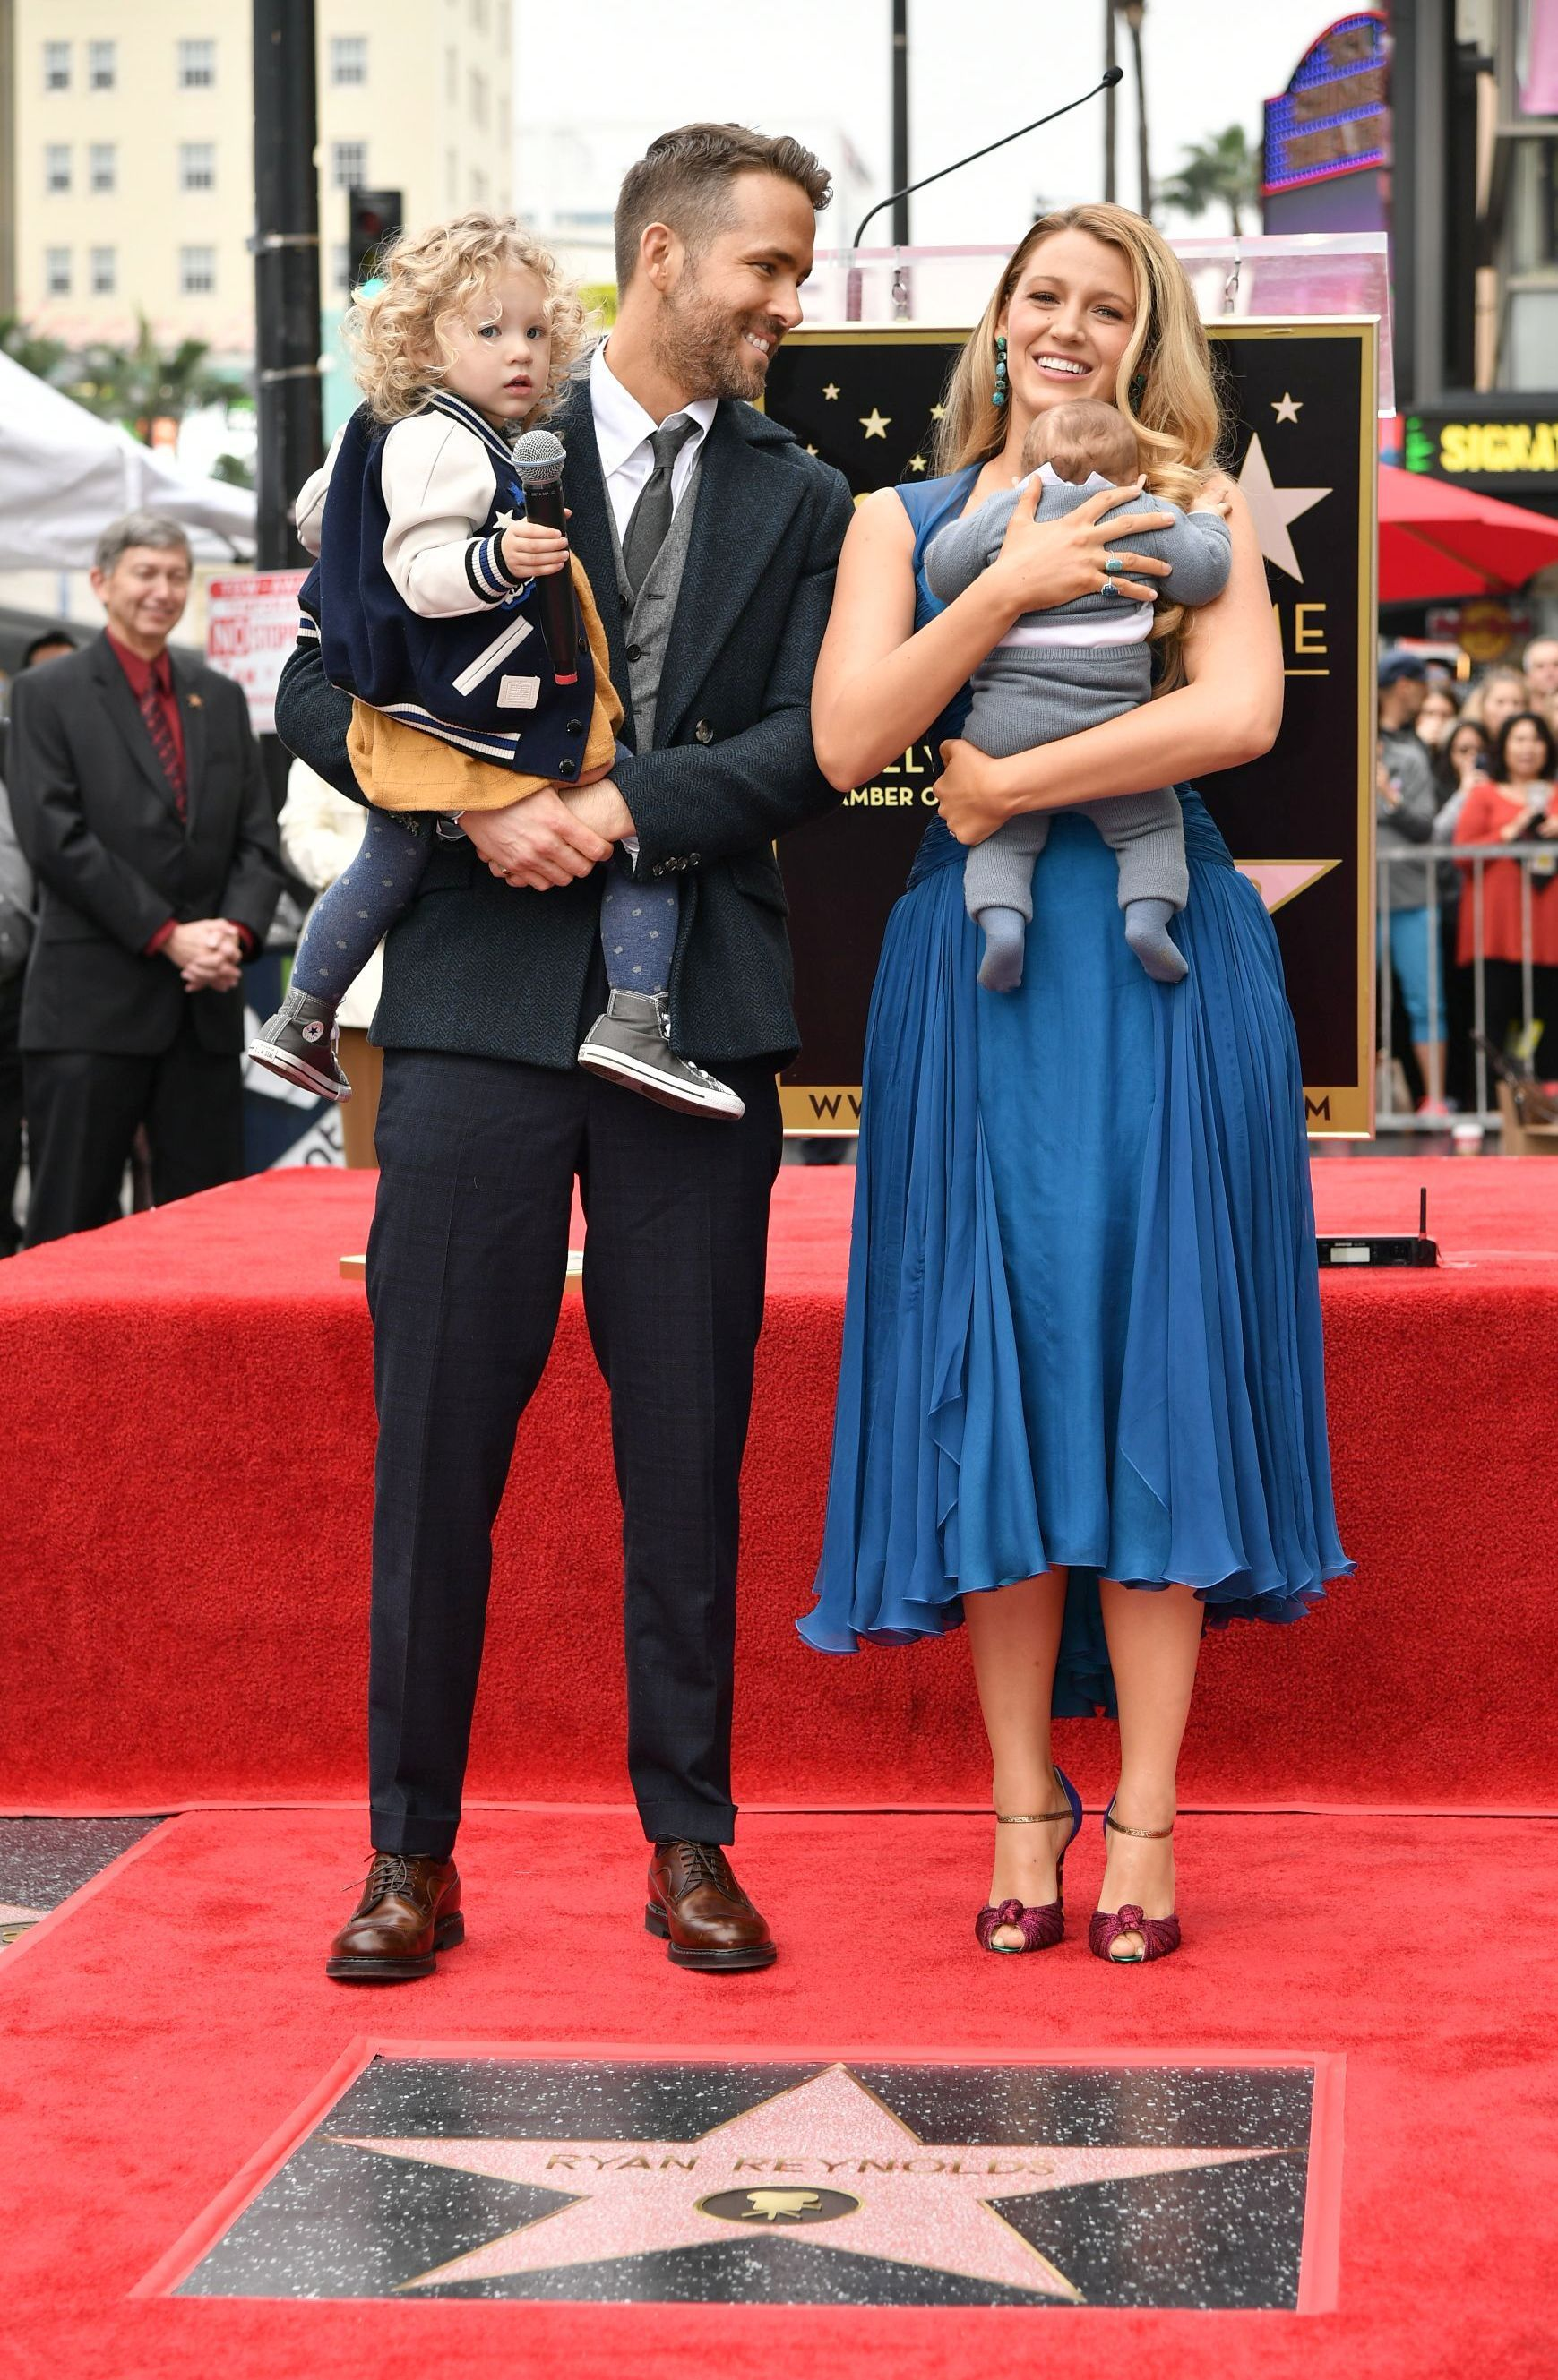 [UPDATED] OMG Blake Lively and Ryan Reynolds' Kids Just Made Their Public Debut